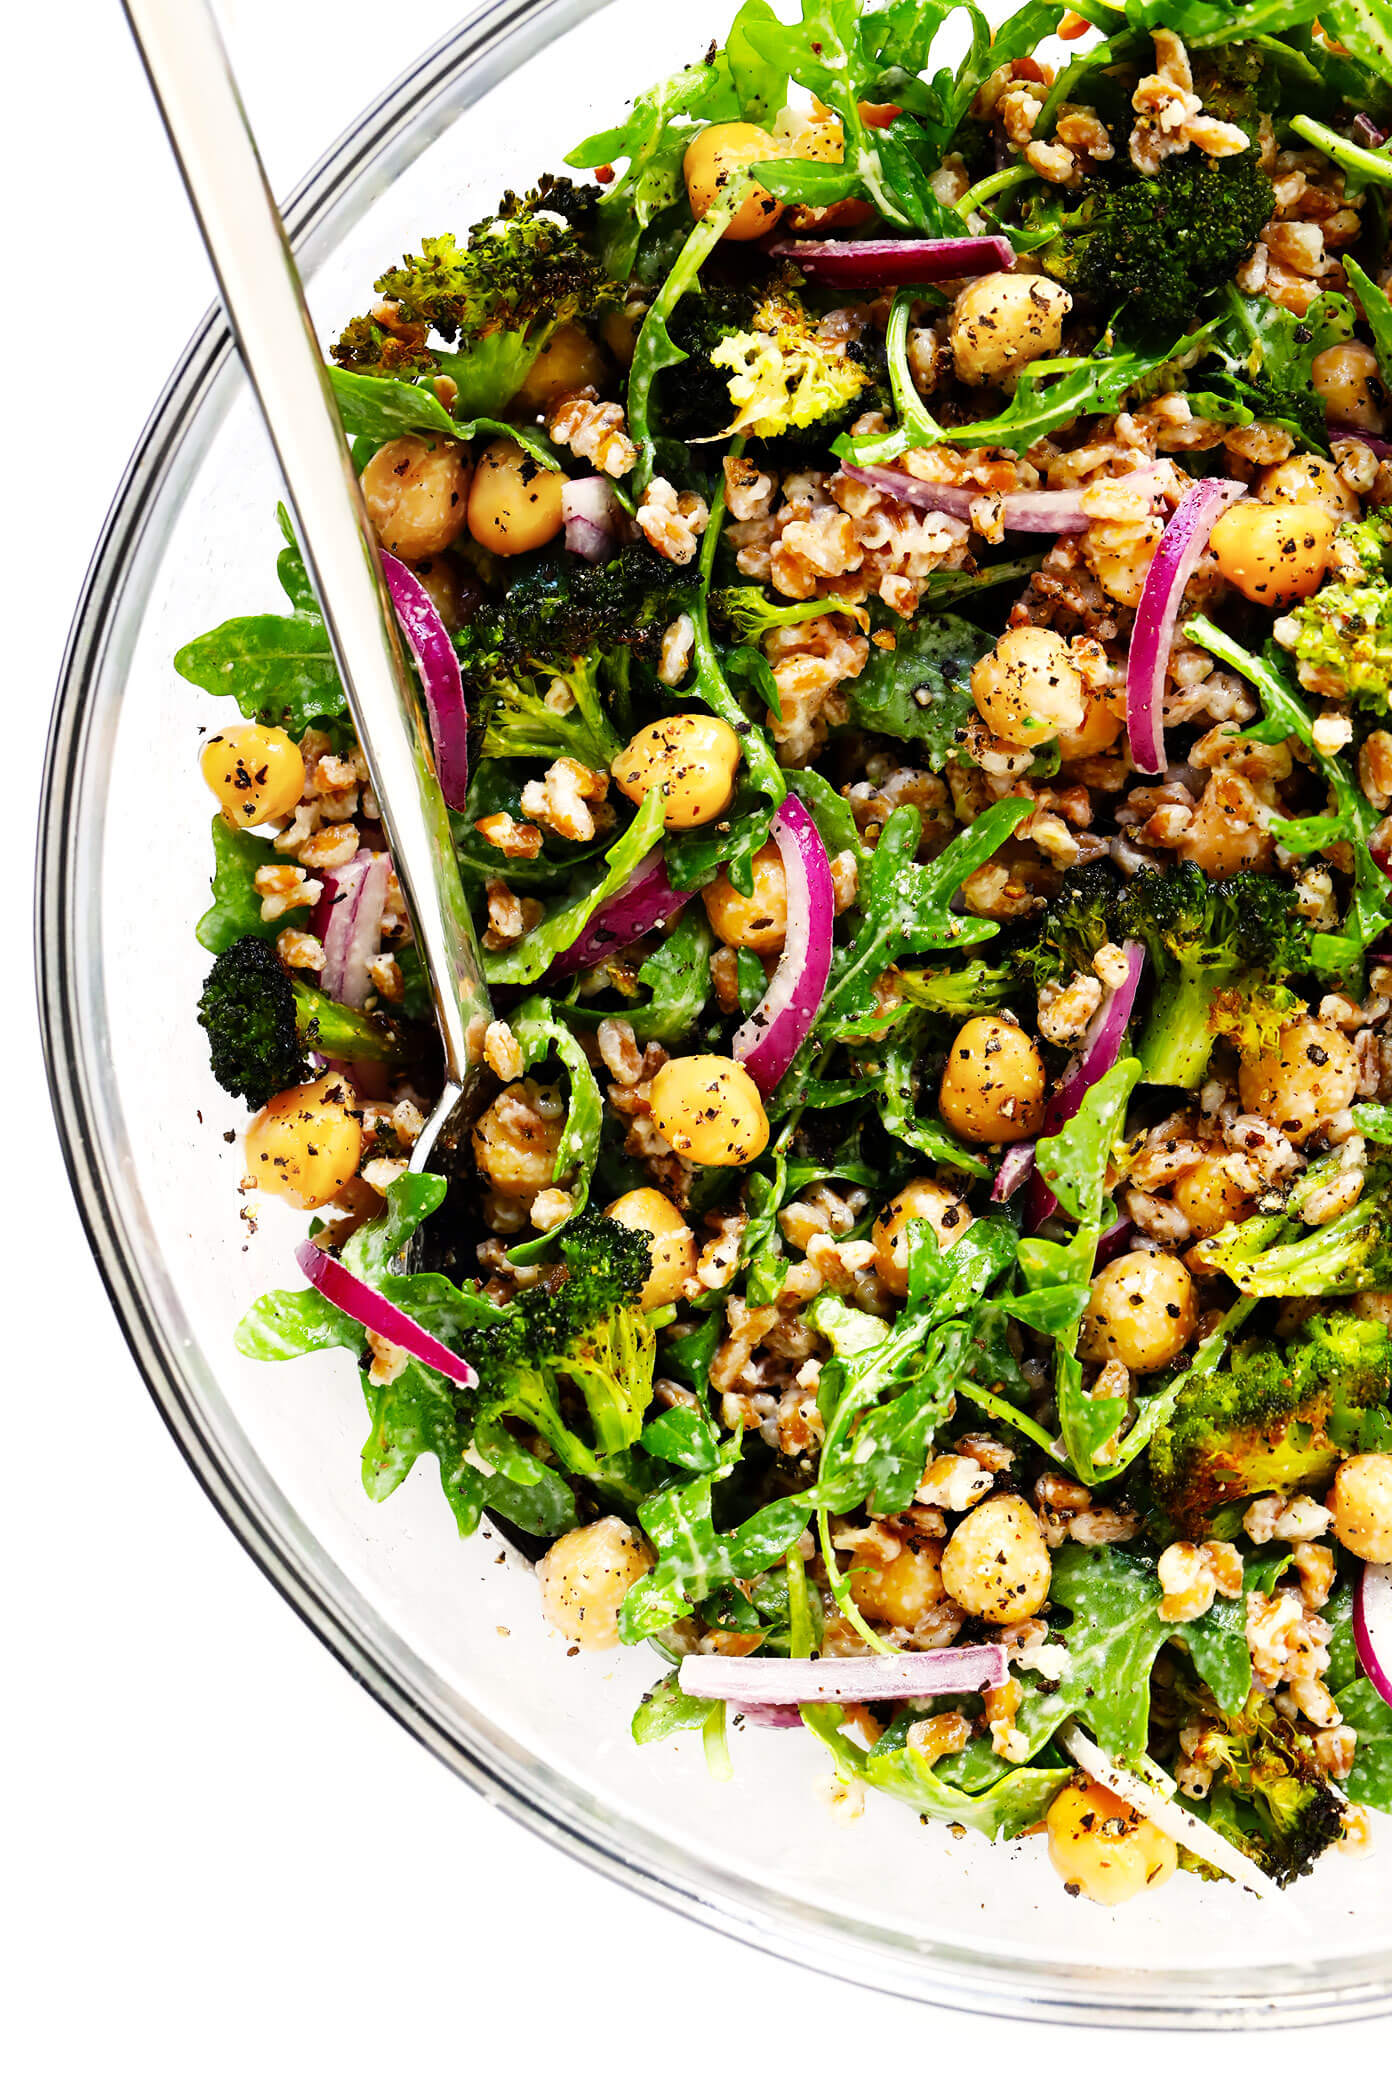 Roasted Broccoli and Farro Salad with Chickpeas